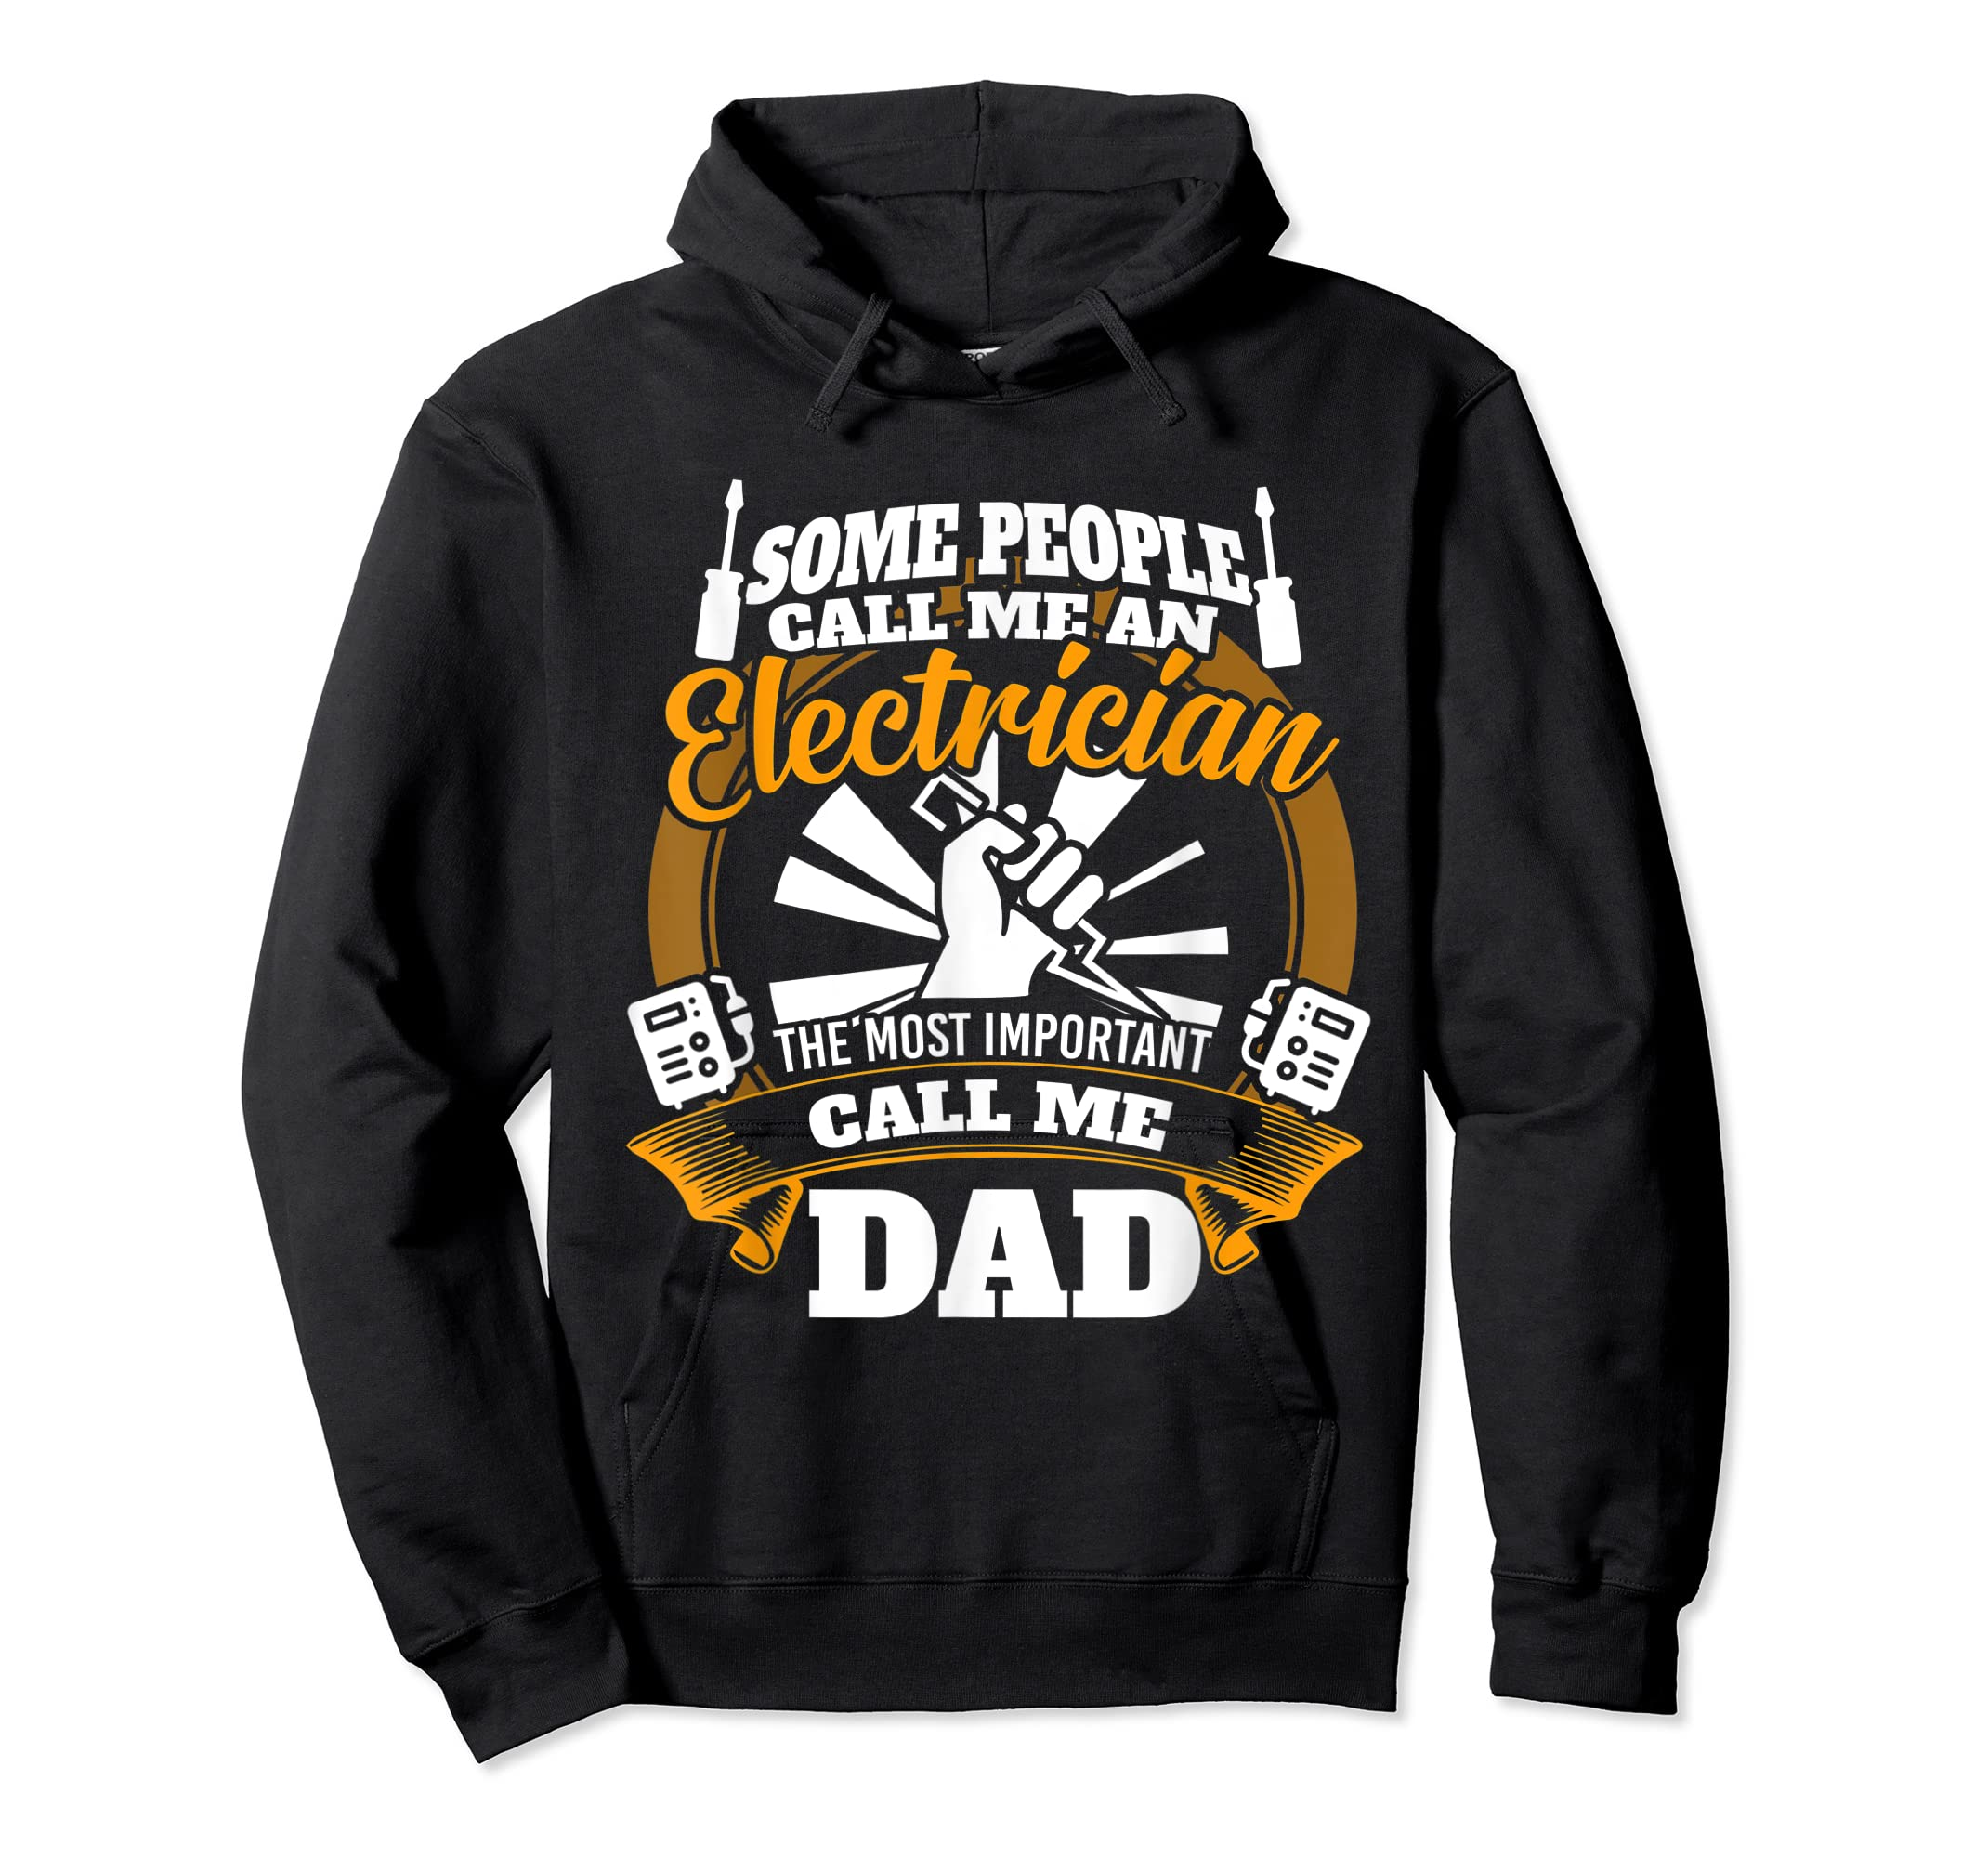 Mens Funny Electrician T-shirt for dad who loves technician gifts-Hoodie-Black